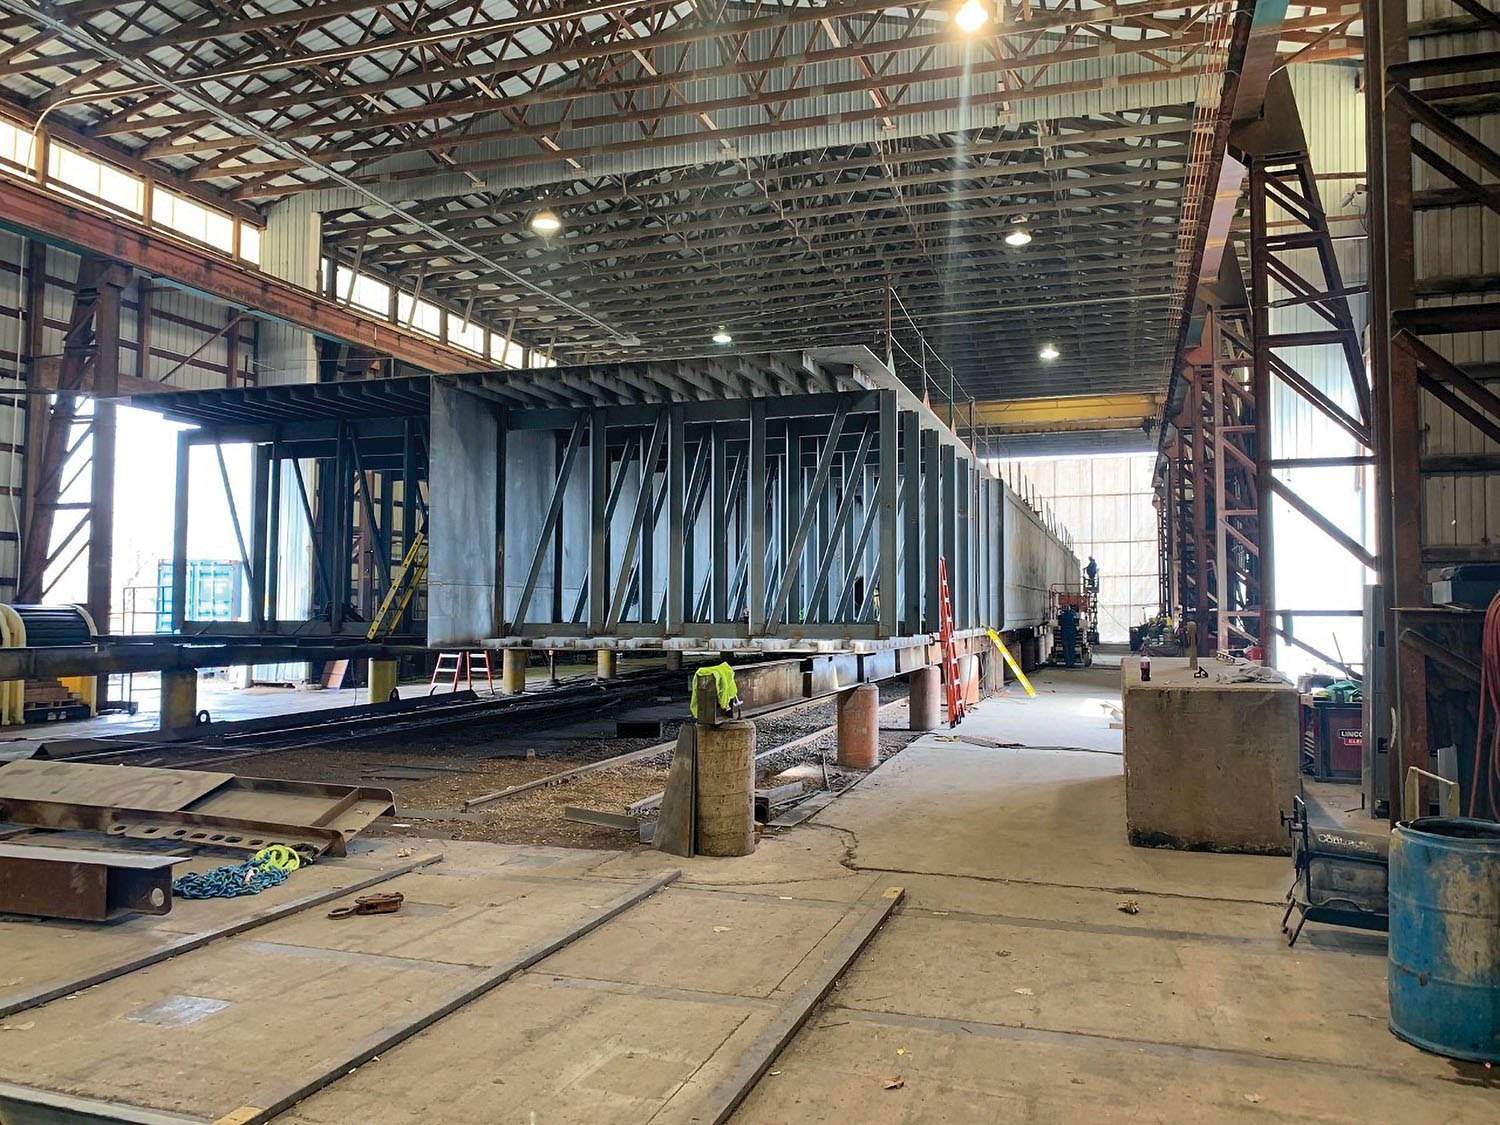 Yager Marine was awarded the bid for a spud barge for a new material handler at the Owensboro (Ky.) Riverport Authority. This photo shows a deck barge currently under construction at Yager Marine. (Photo courtesy of Yager Marine)